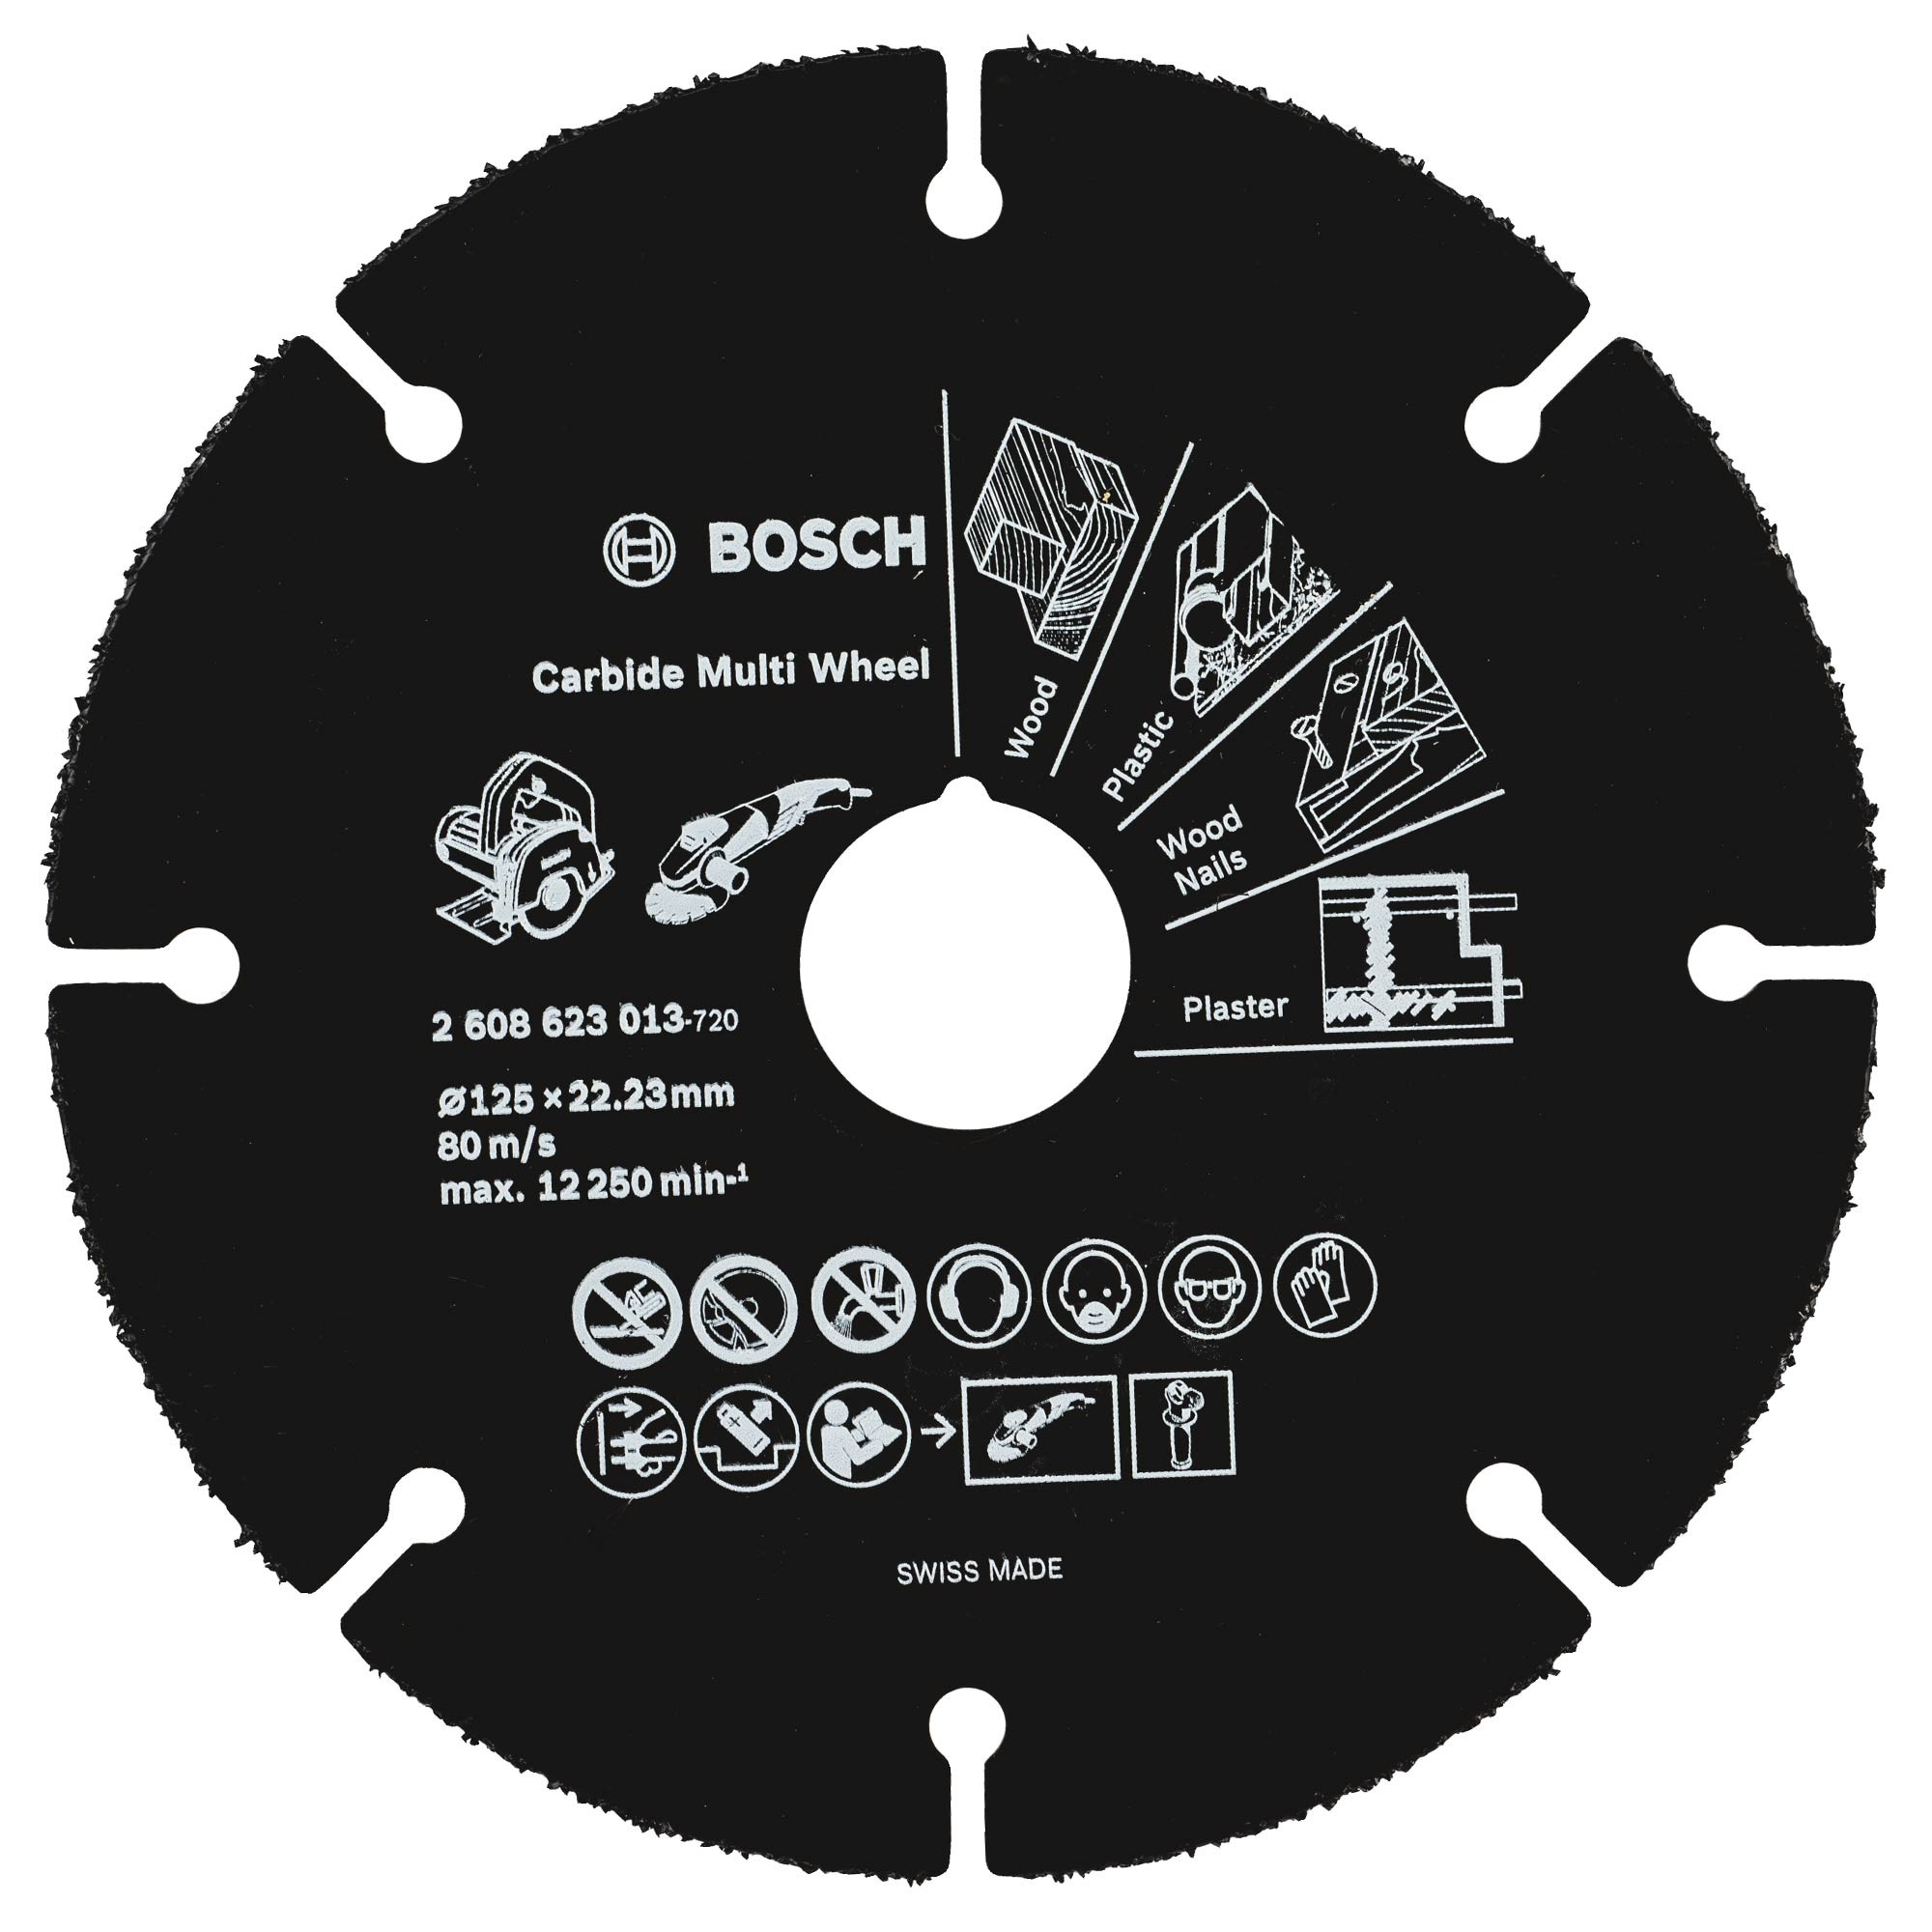 Bosch Multi Wheel Carbide Cutting Grinder Disc 125mm 2608623013 Cordless Angle Metabo W18 Ltx 125